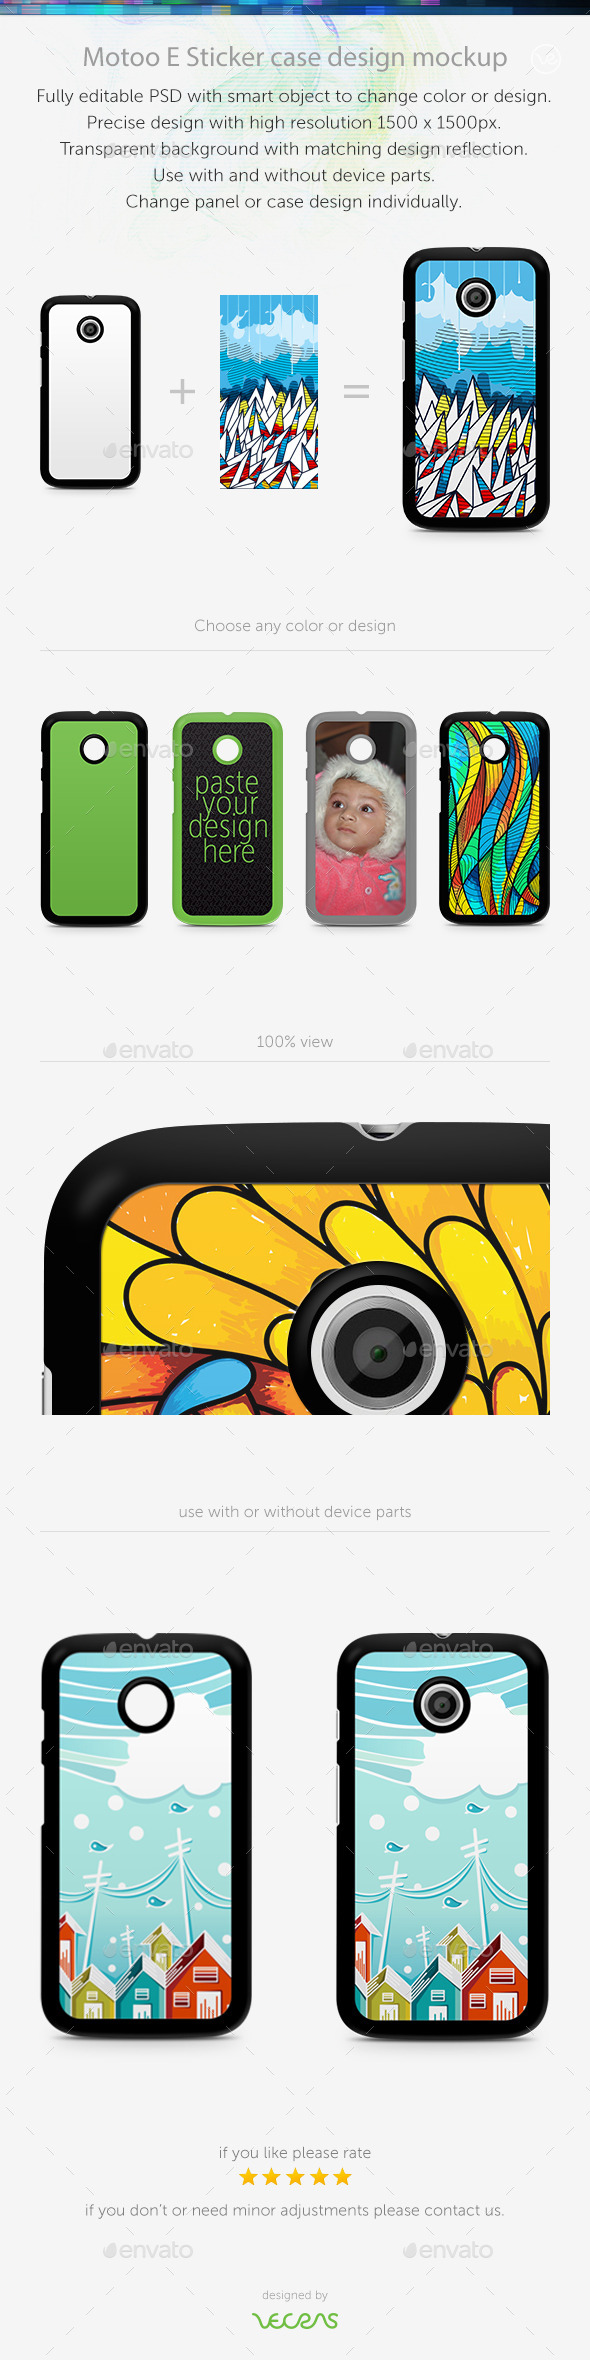 GraphicRiver Motoo E Sticker Case Design Mockup 10413991